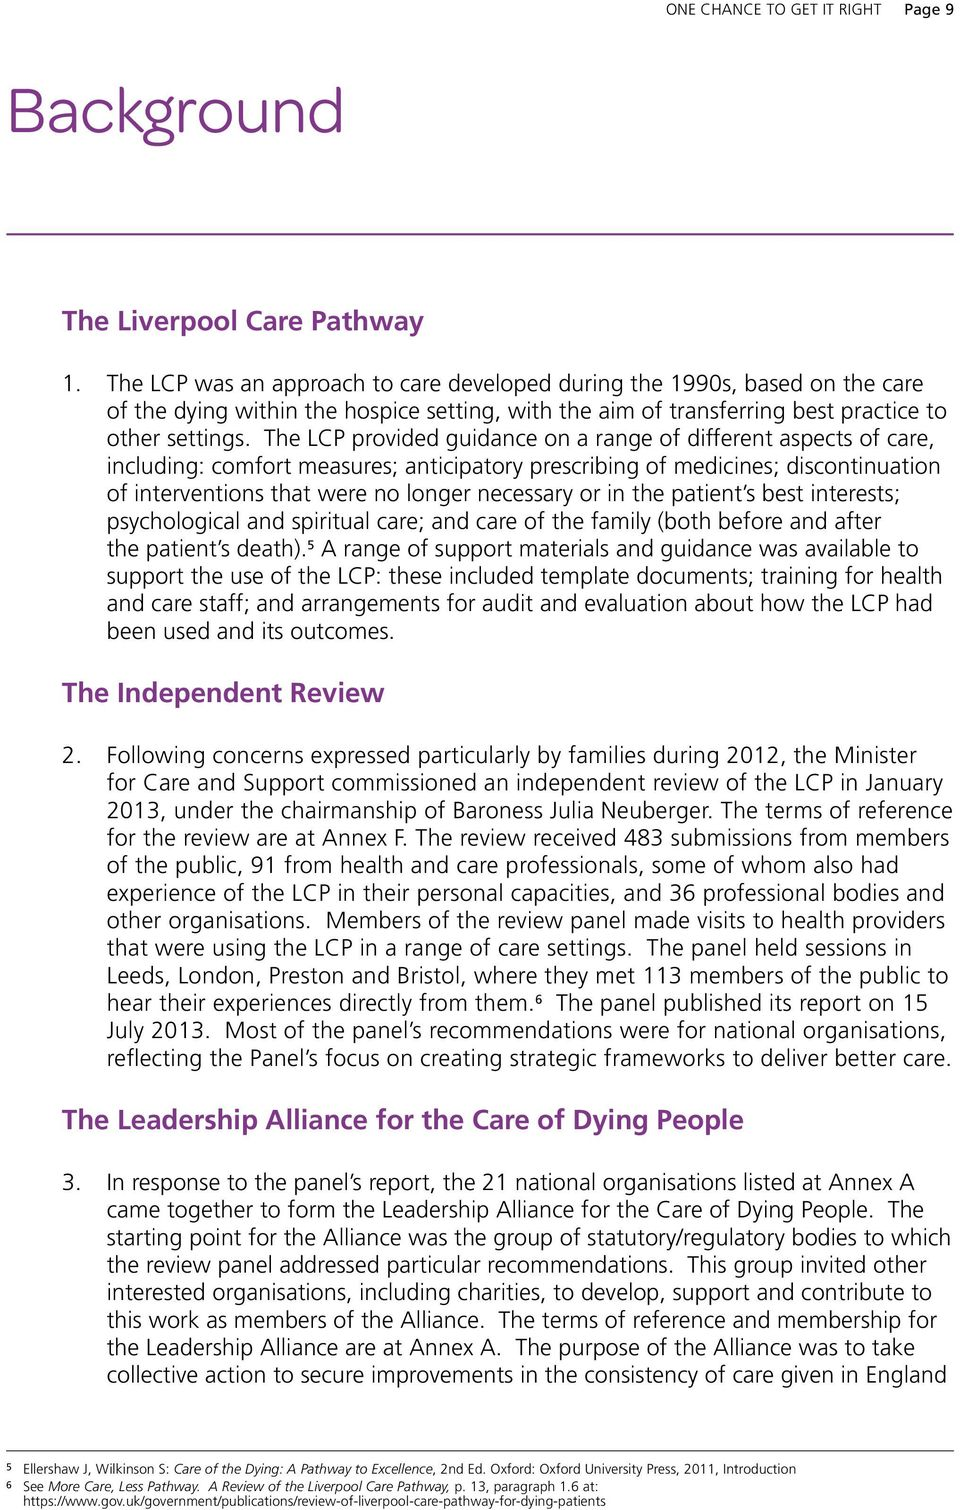 the LcP provided guidance on a range of different aspects of care, including: comfort measures; anticipatory prescribing of medicines; discontinuation of interventions that were no longer necessary